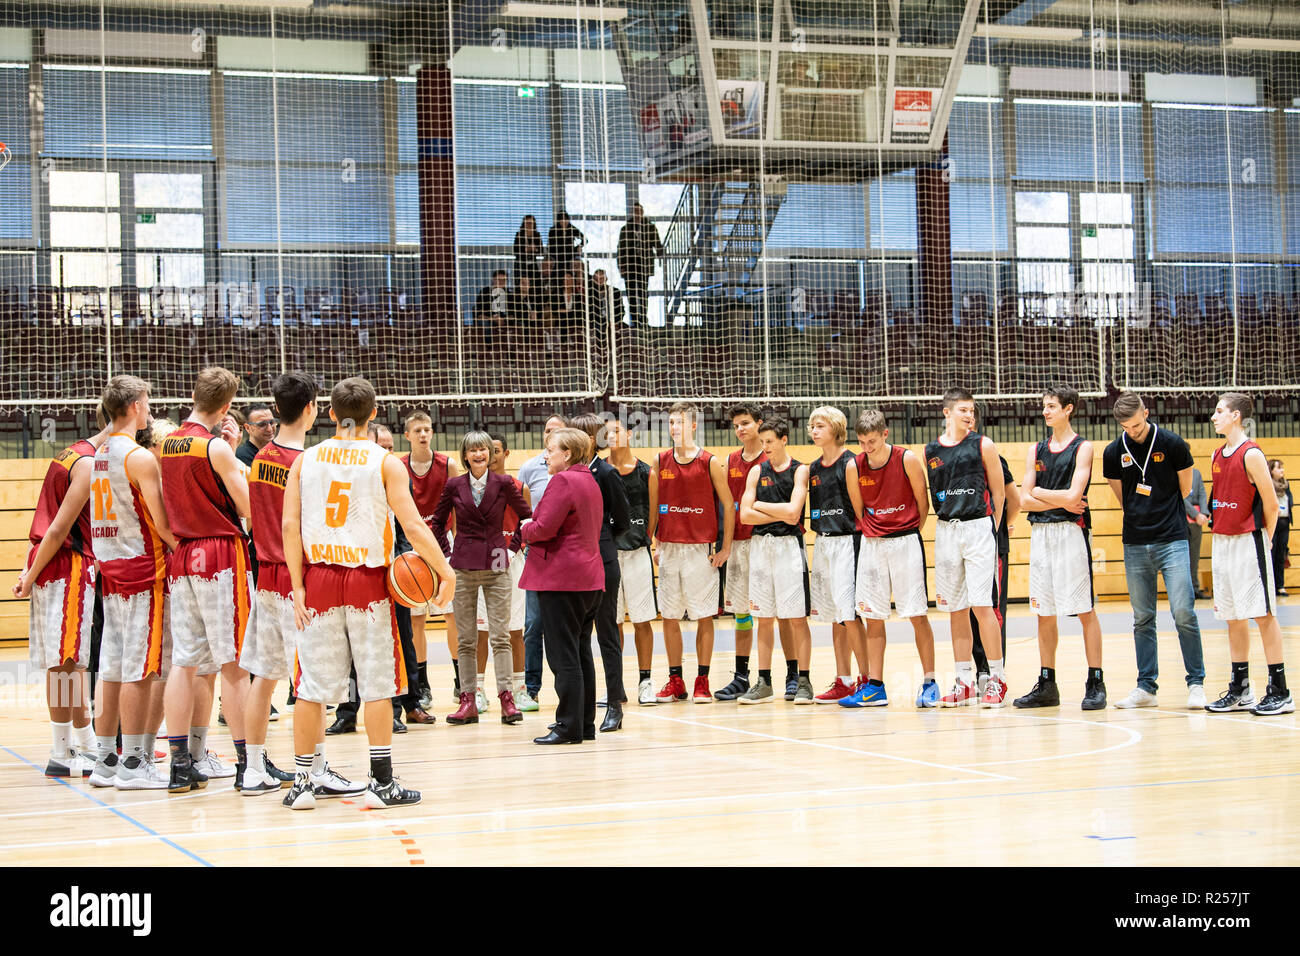 Chemnitz, Germany. 16th Nov, 2018. German Chancellor Angela Merkel (C) talks with members of the basketball club Niners Chemnitz during her visit in Chemnitz, eastern Germany, on Nov. 16, 2018. Angela Merkel on Friday clarified her refugee policy during her visit to Chemnitz, a place regarded as the center of several severe xenophobic protests months ago. Credit: Kevin Voigt/Xinhua/Alamy Live News - Stock Image